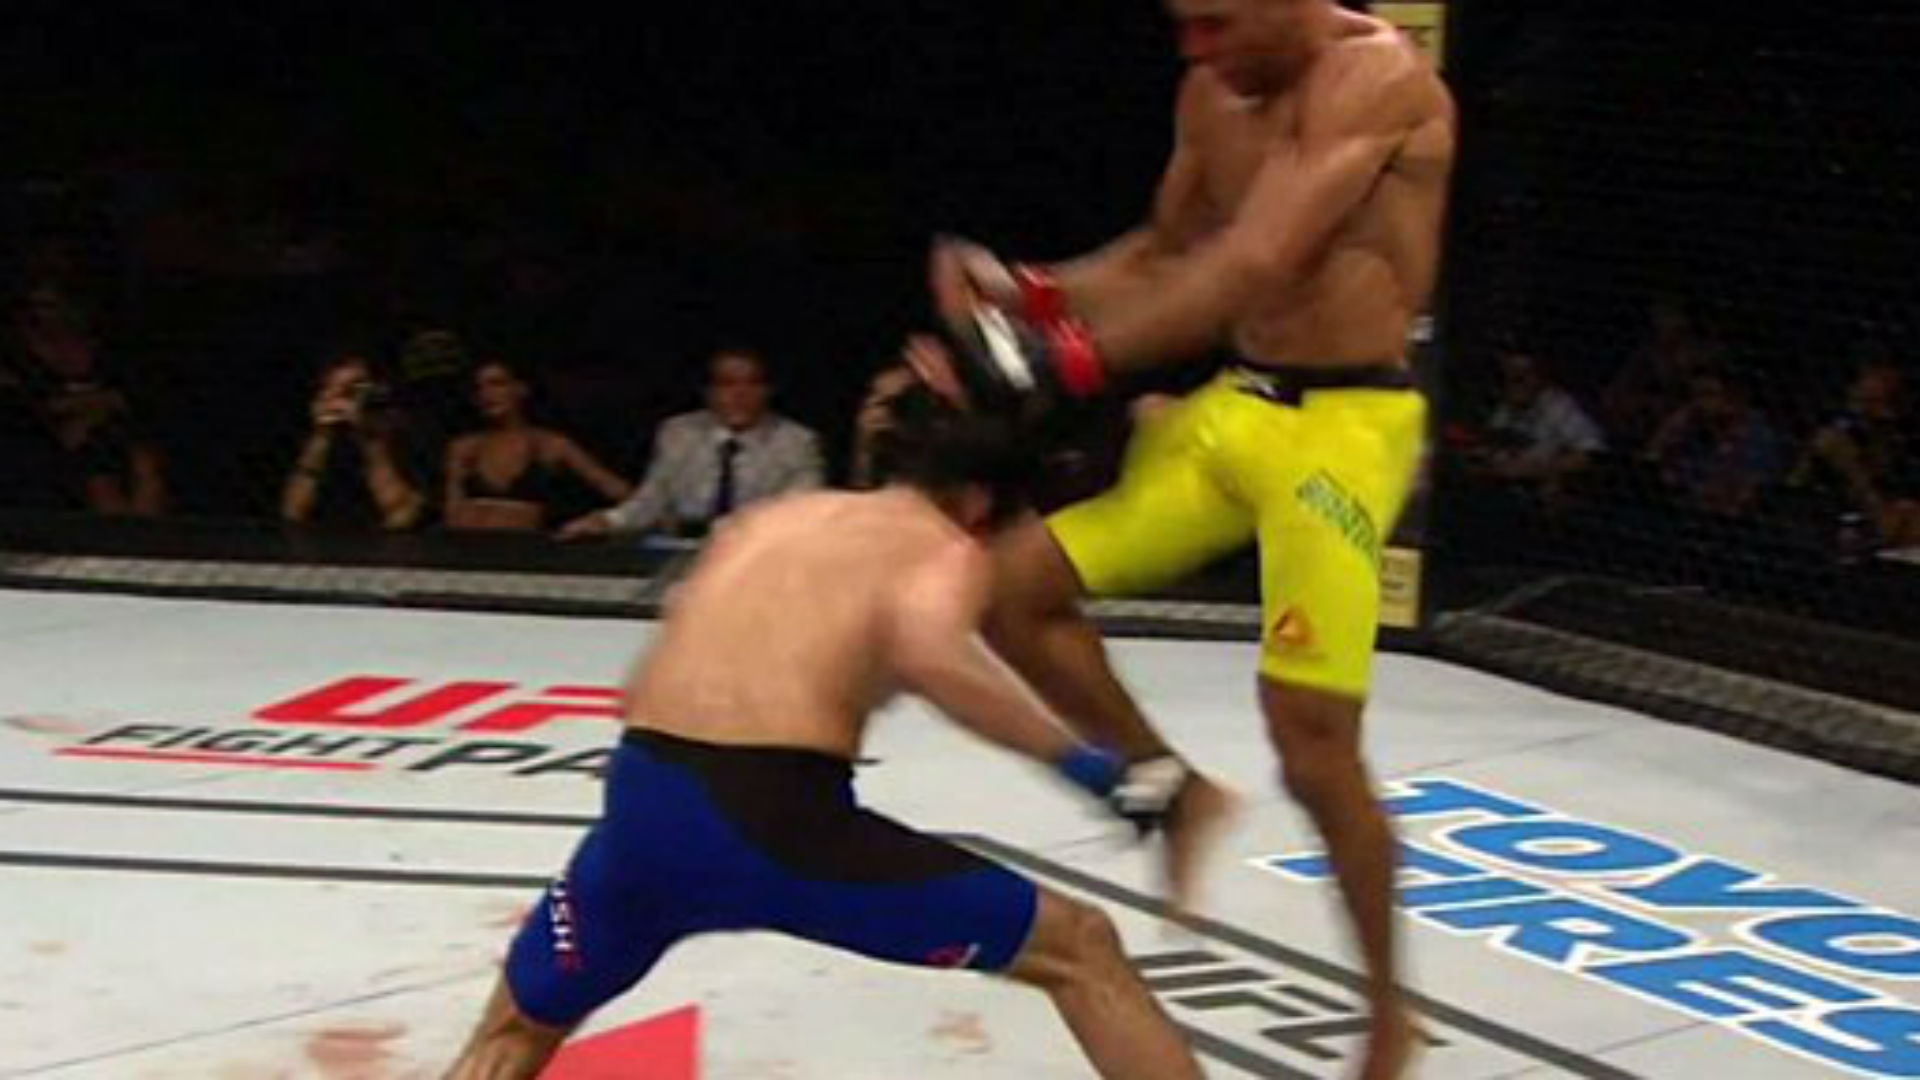 Edson Barboza Knocks Out Beneil Dariush With Vicious Flying Over